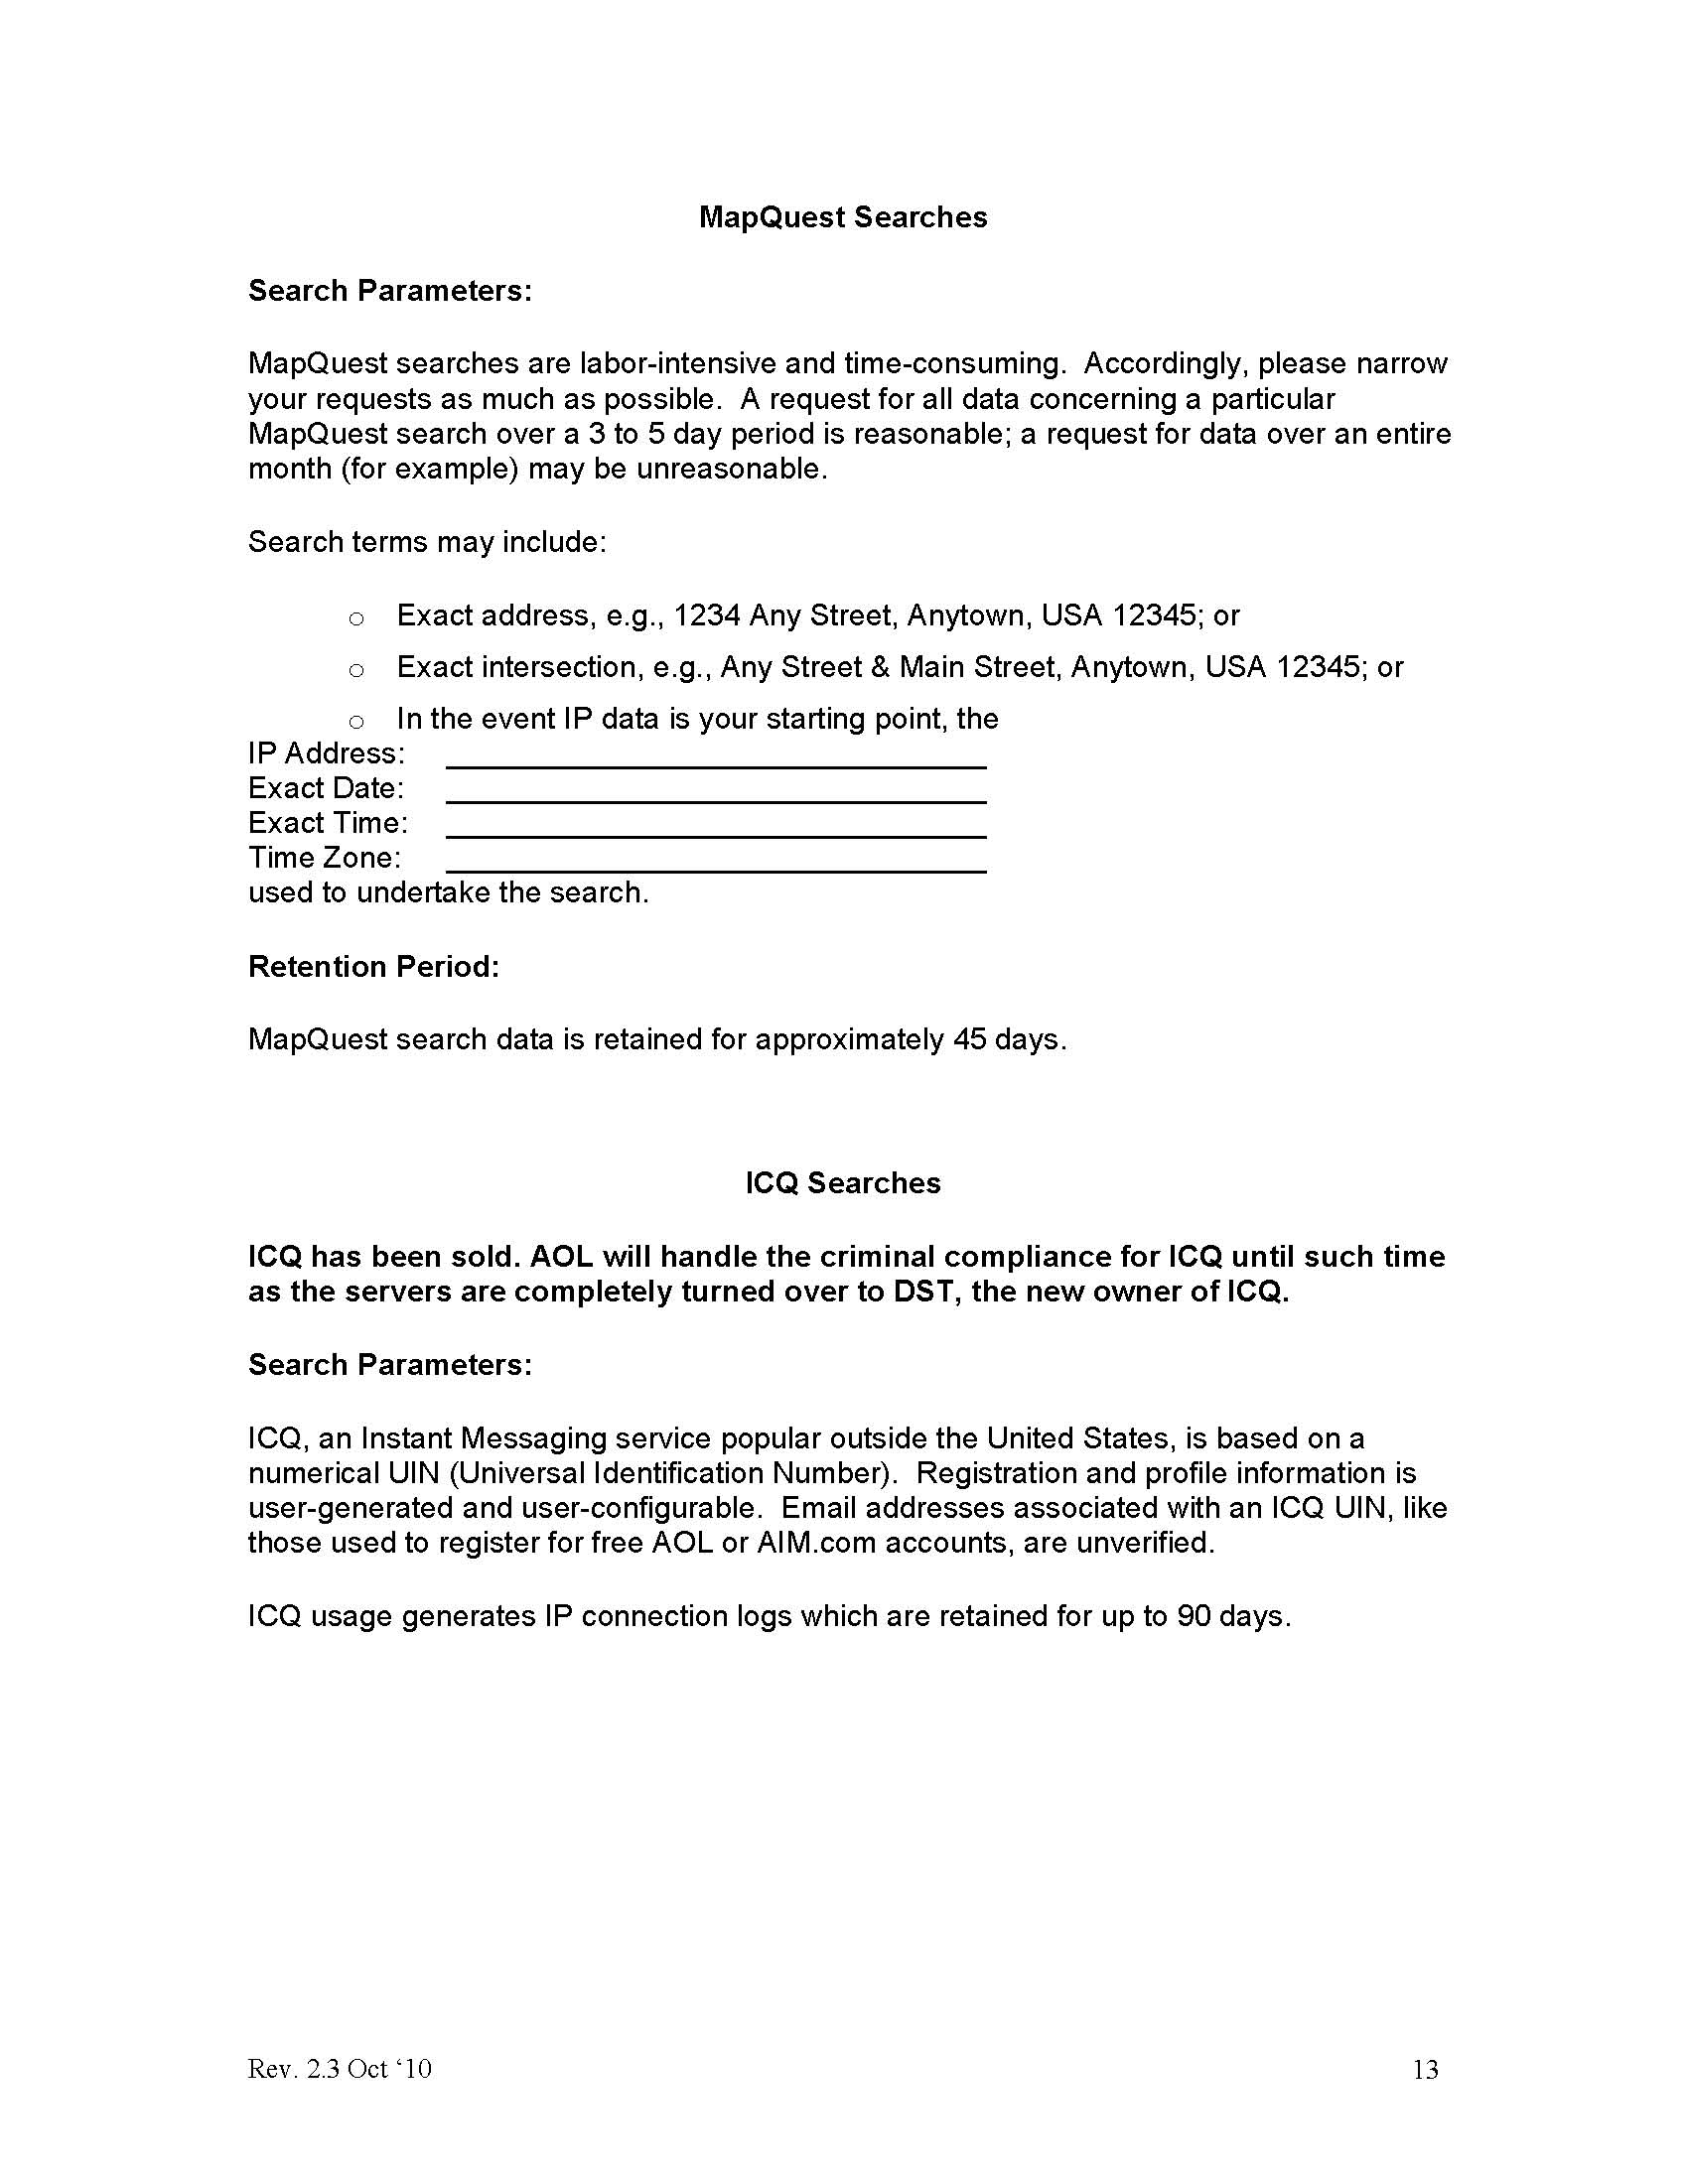 Aol Information Request Subpoena Guidelines October 2010